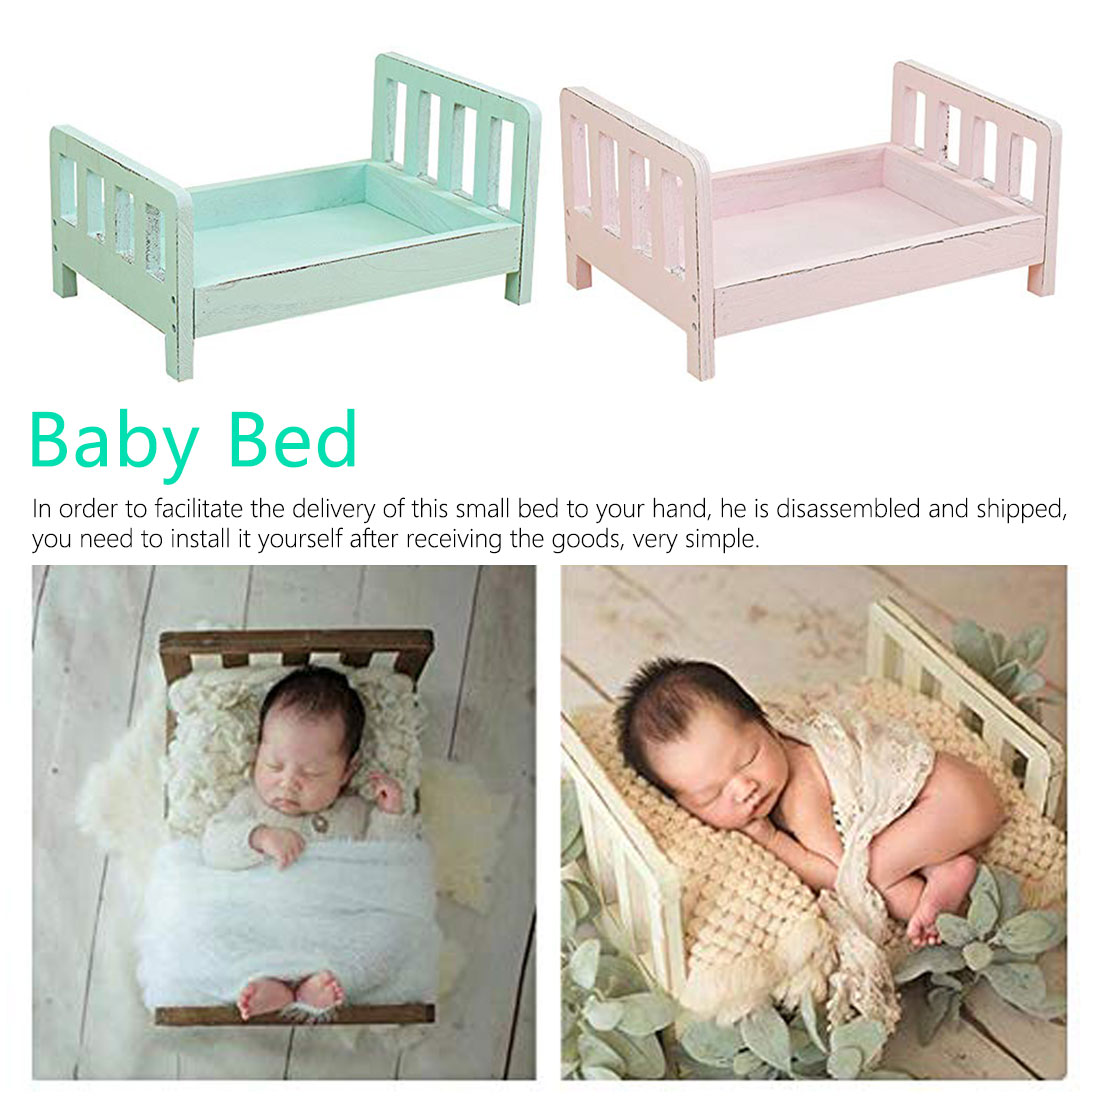 Accessories Background Sofa Studio-Props Newborn-Basket Wood Posing Photo-Shoot Baby